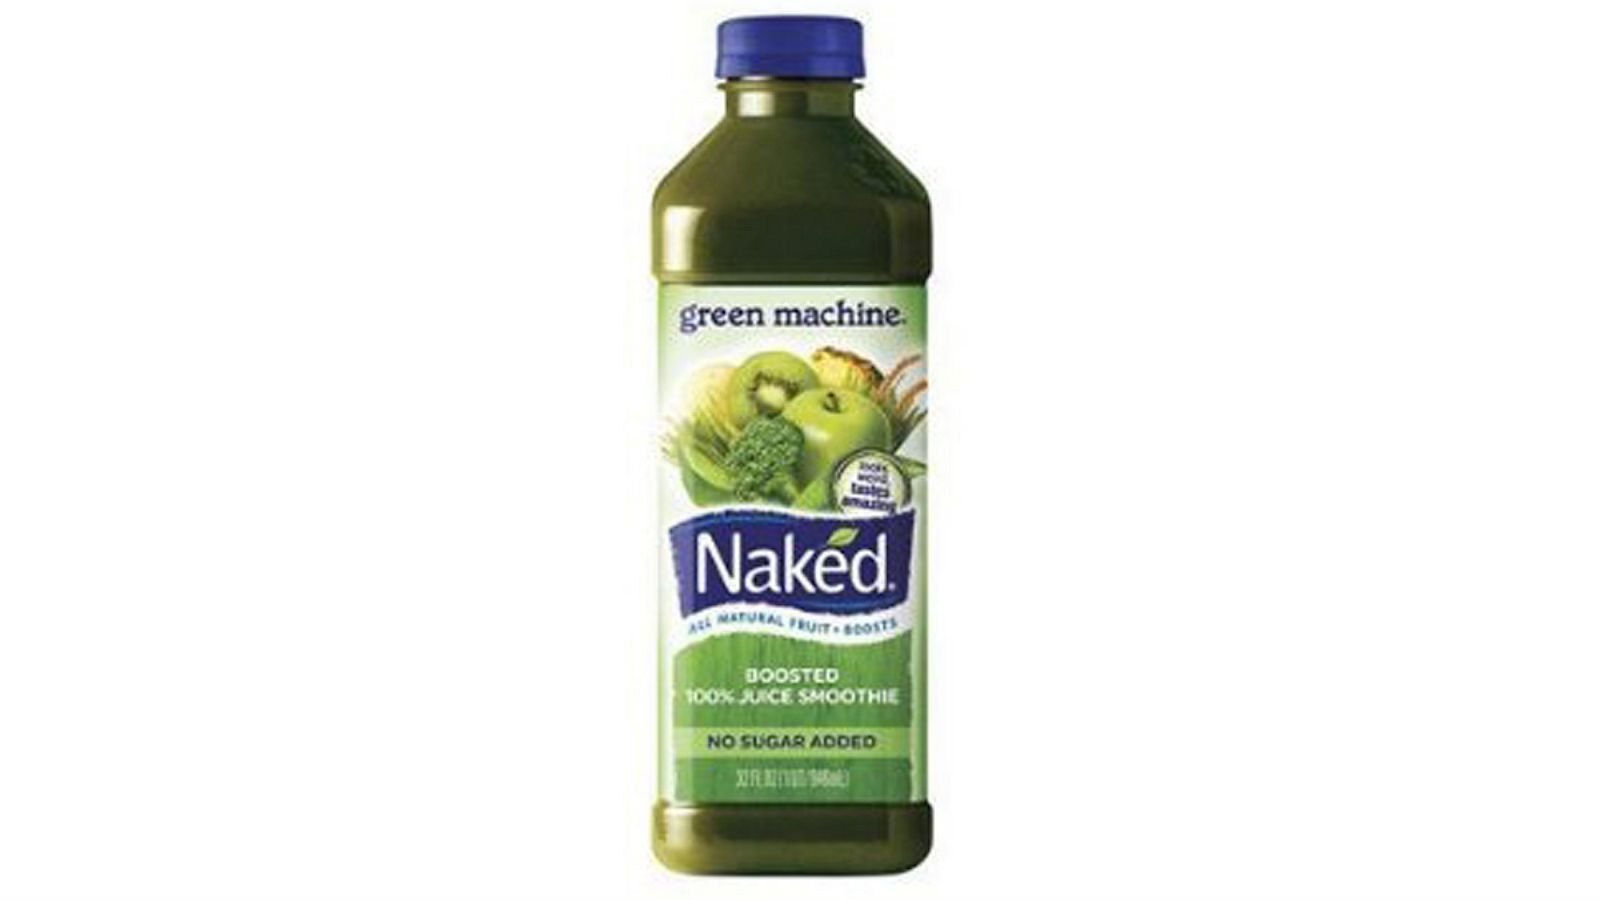 Naked Juice Settlement Offers Up to $75 Per Consumer